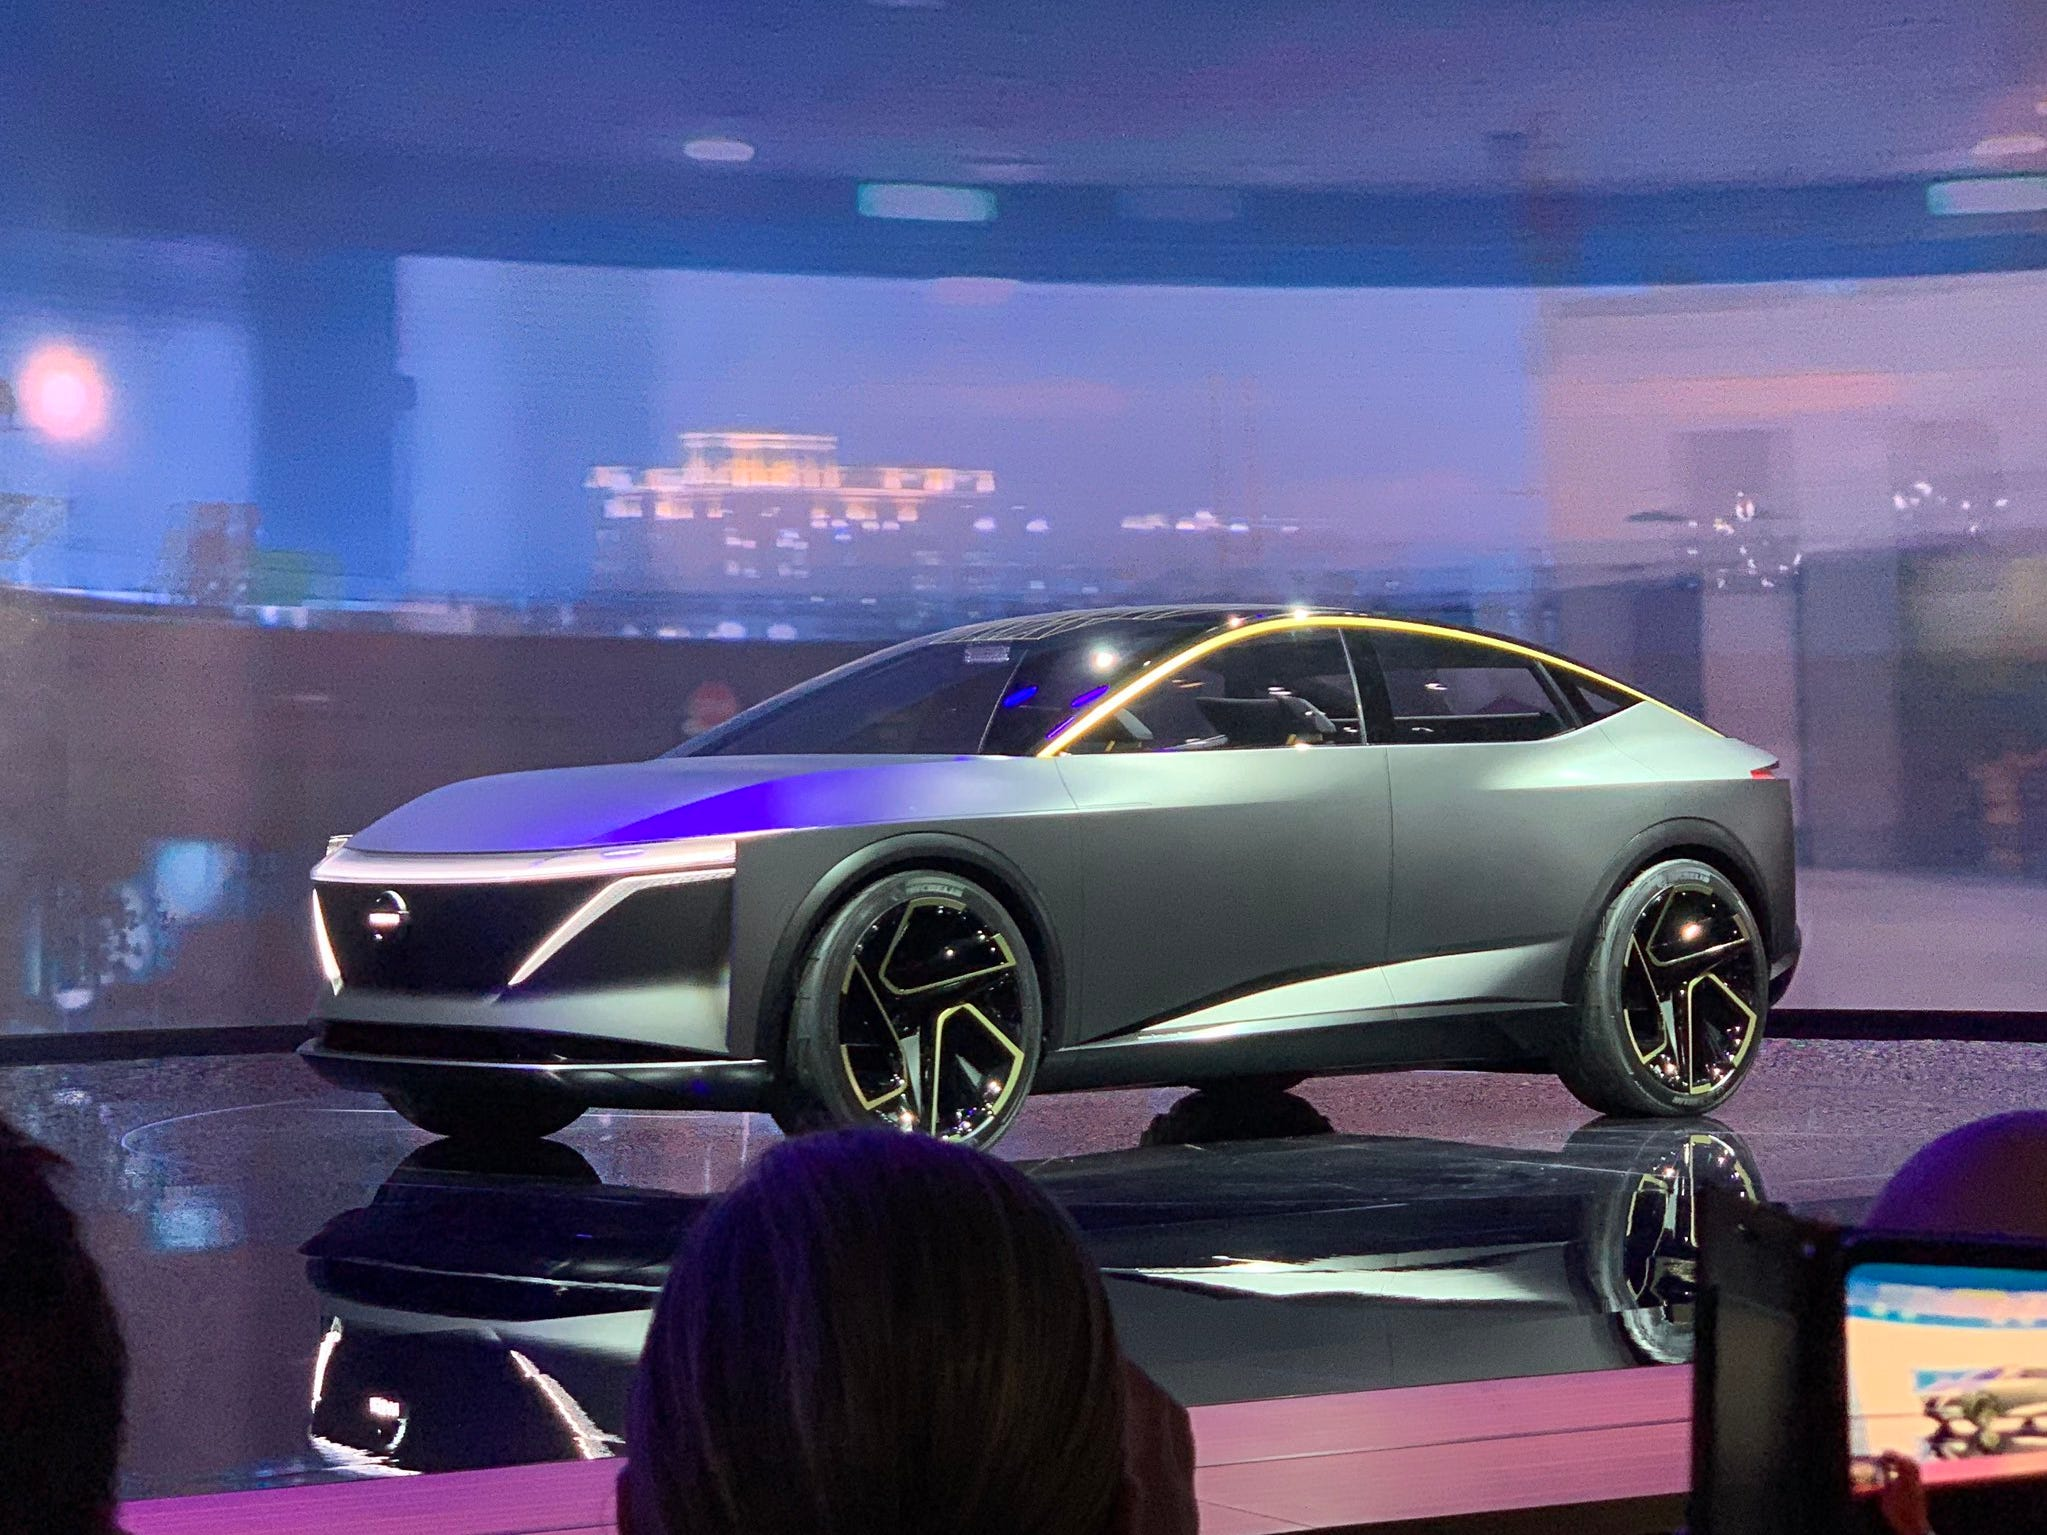 Detroit auto show: Nissan's concept is a new type of electric car